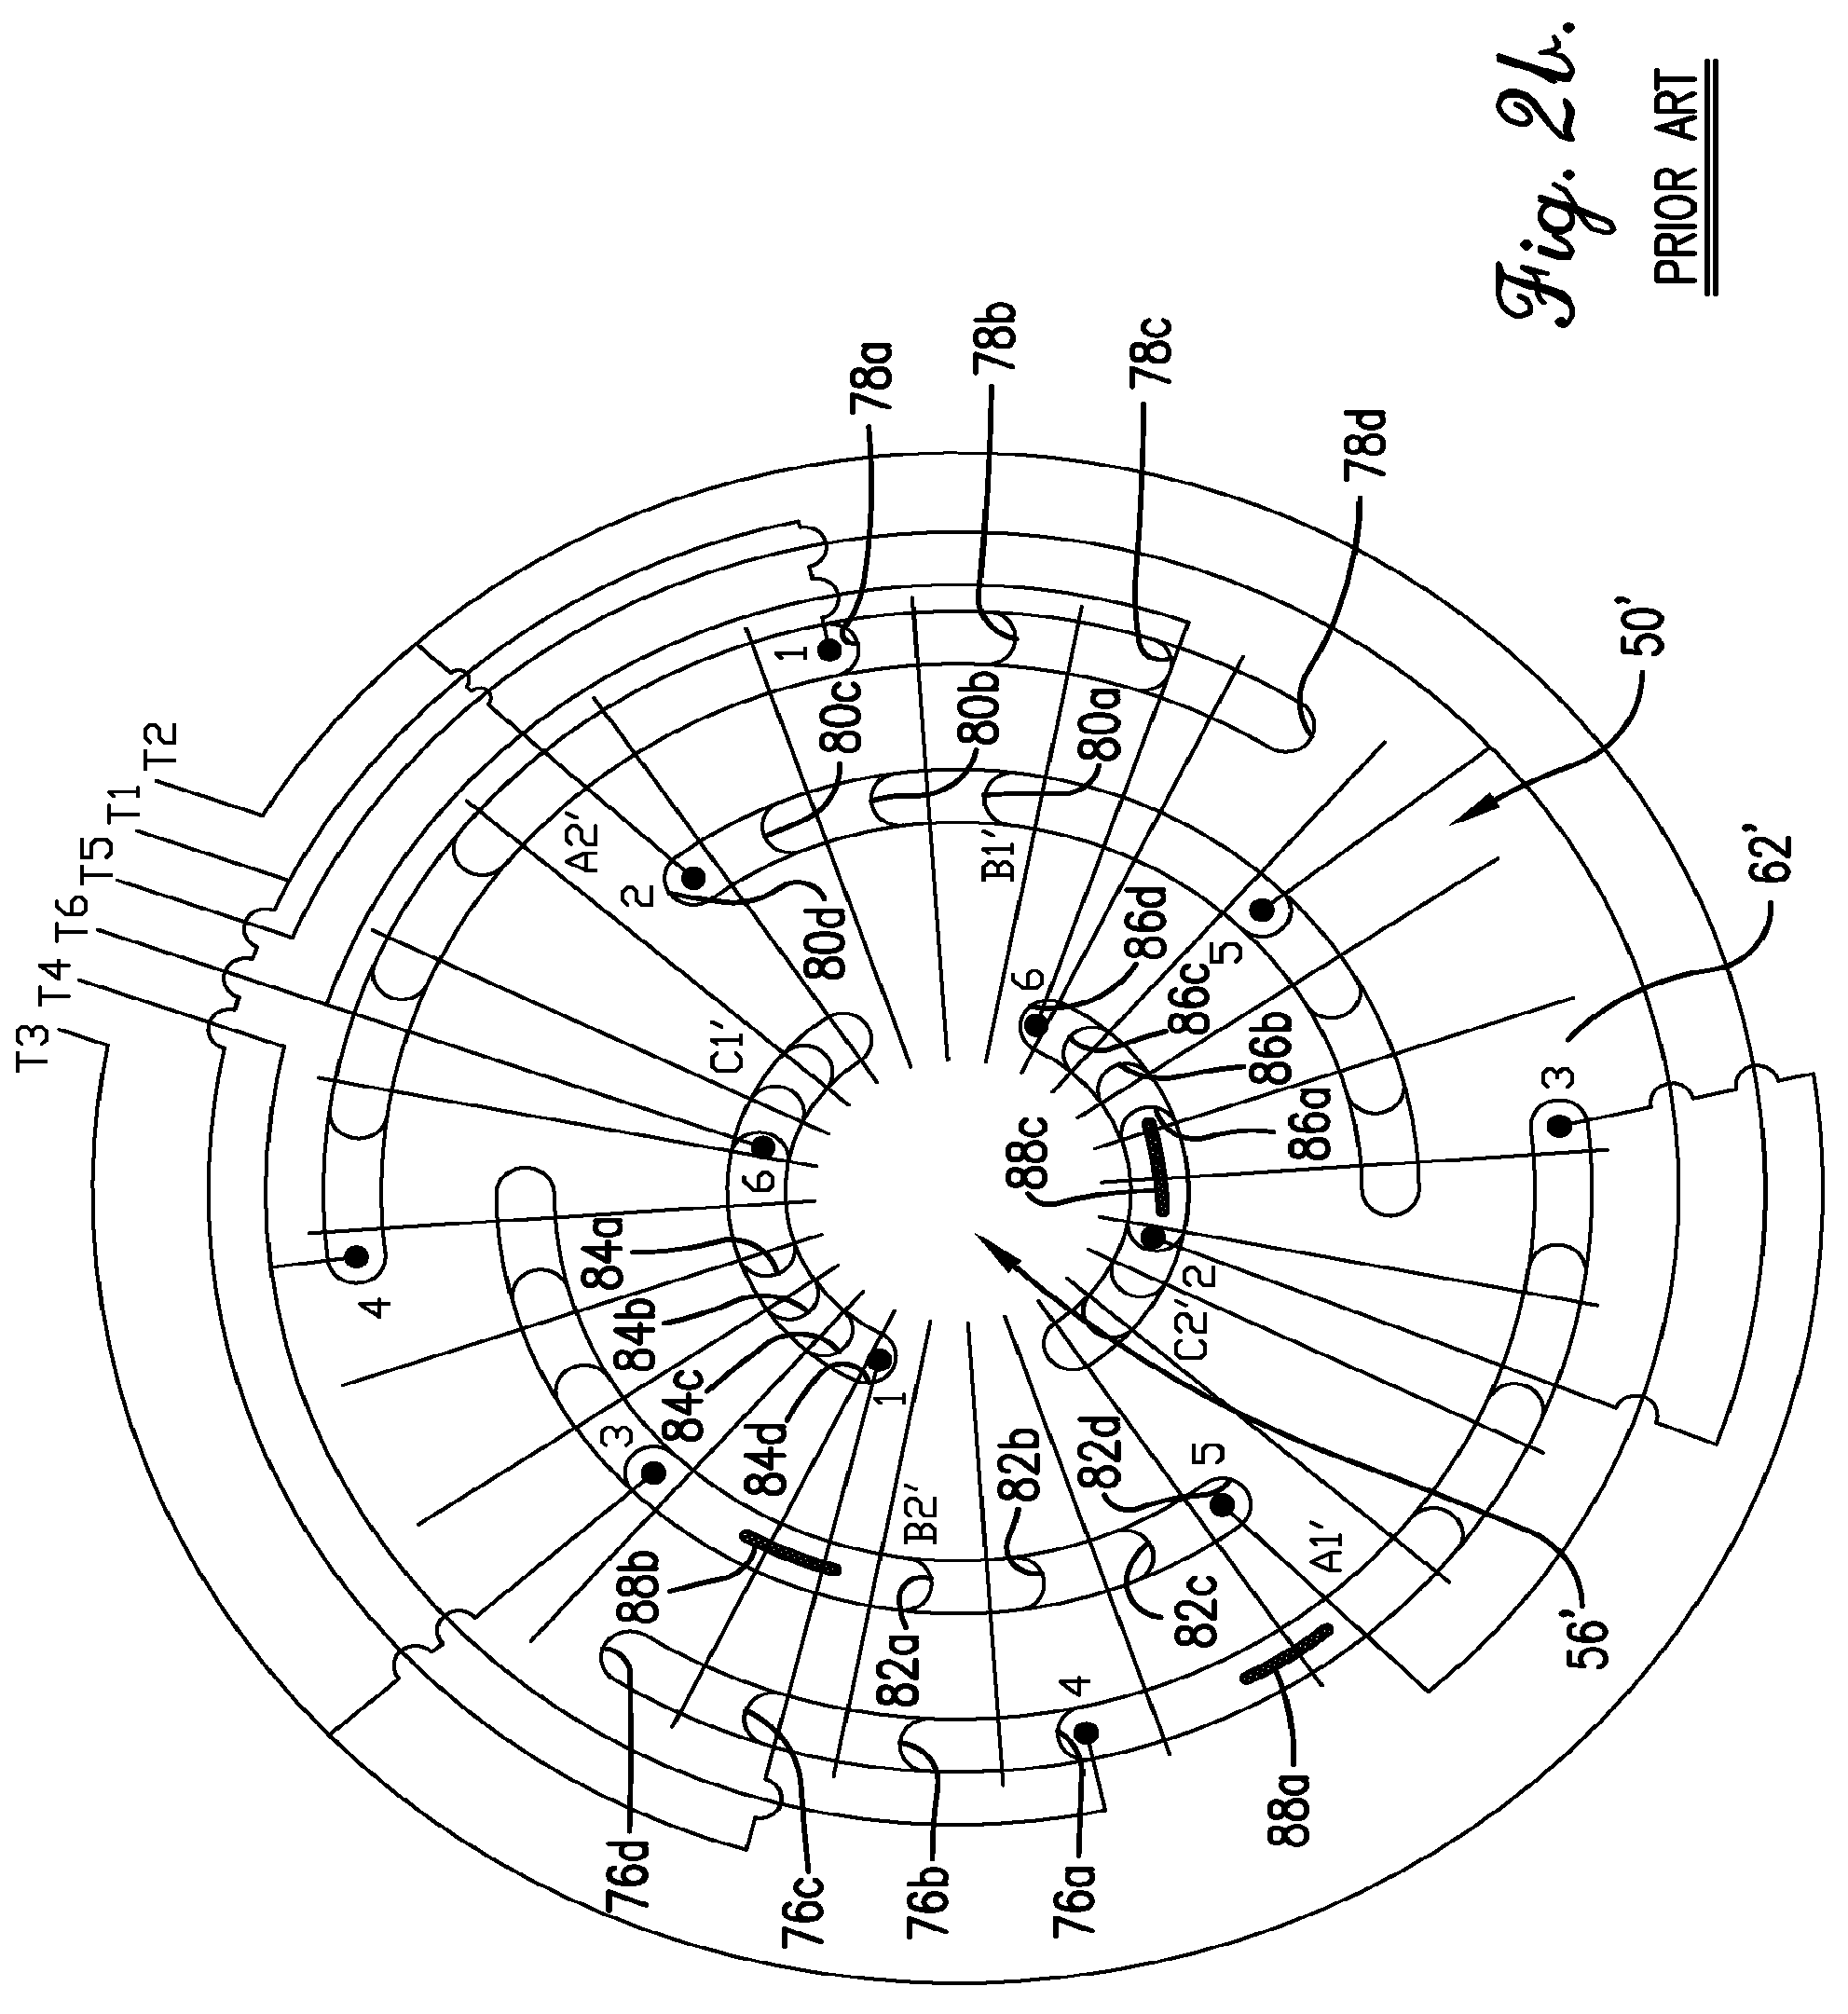 3 Phase Motor Winding Diagrams 30 Wiring Diagram Images 6 Lead 3phase6leadmotorwiring Us08564167 20131022 D00003 Patent Us8564167 3t Y Connection For Three